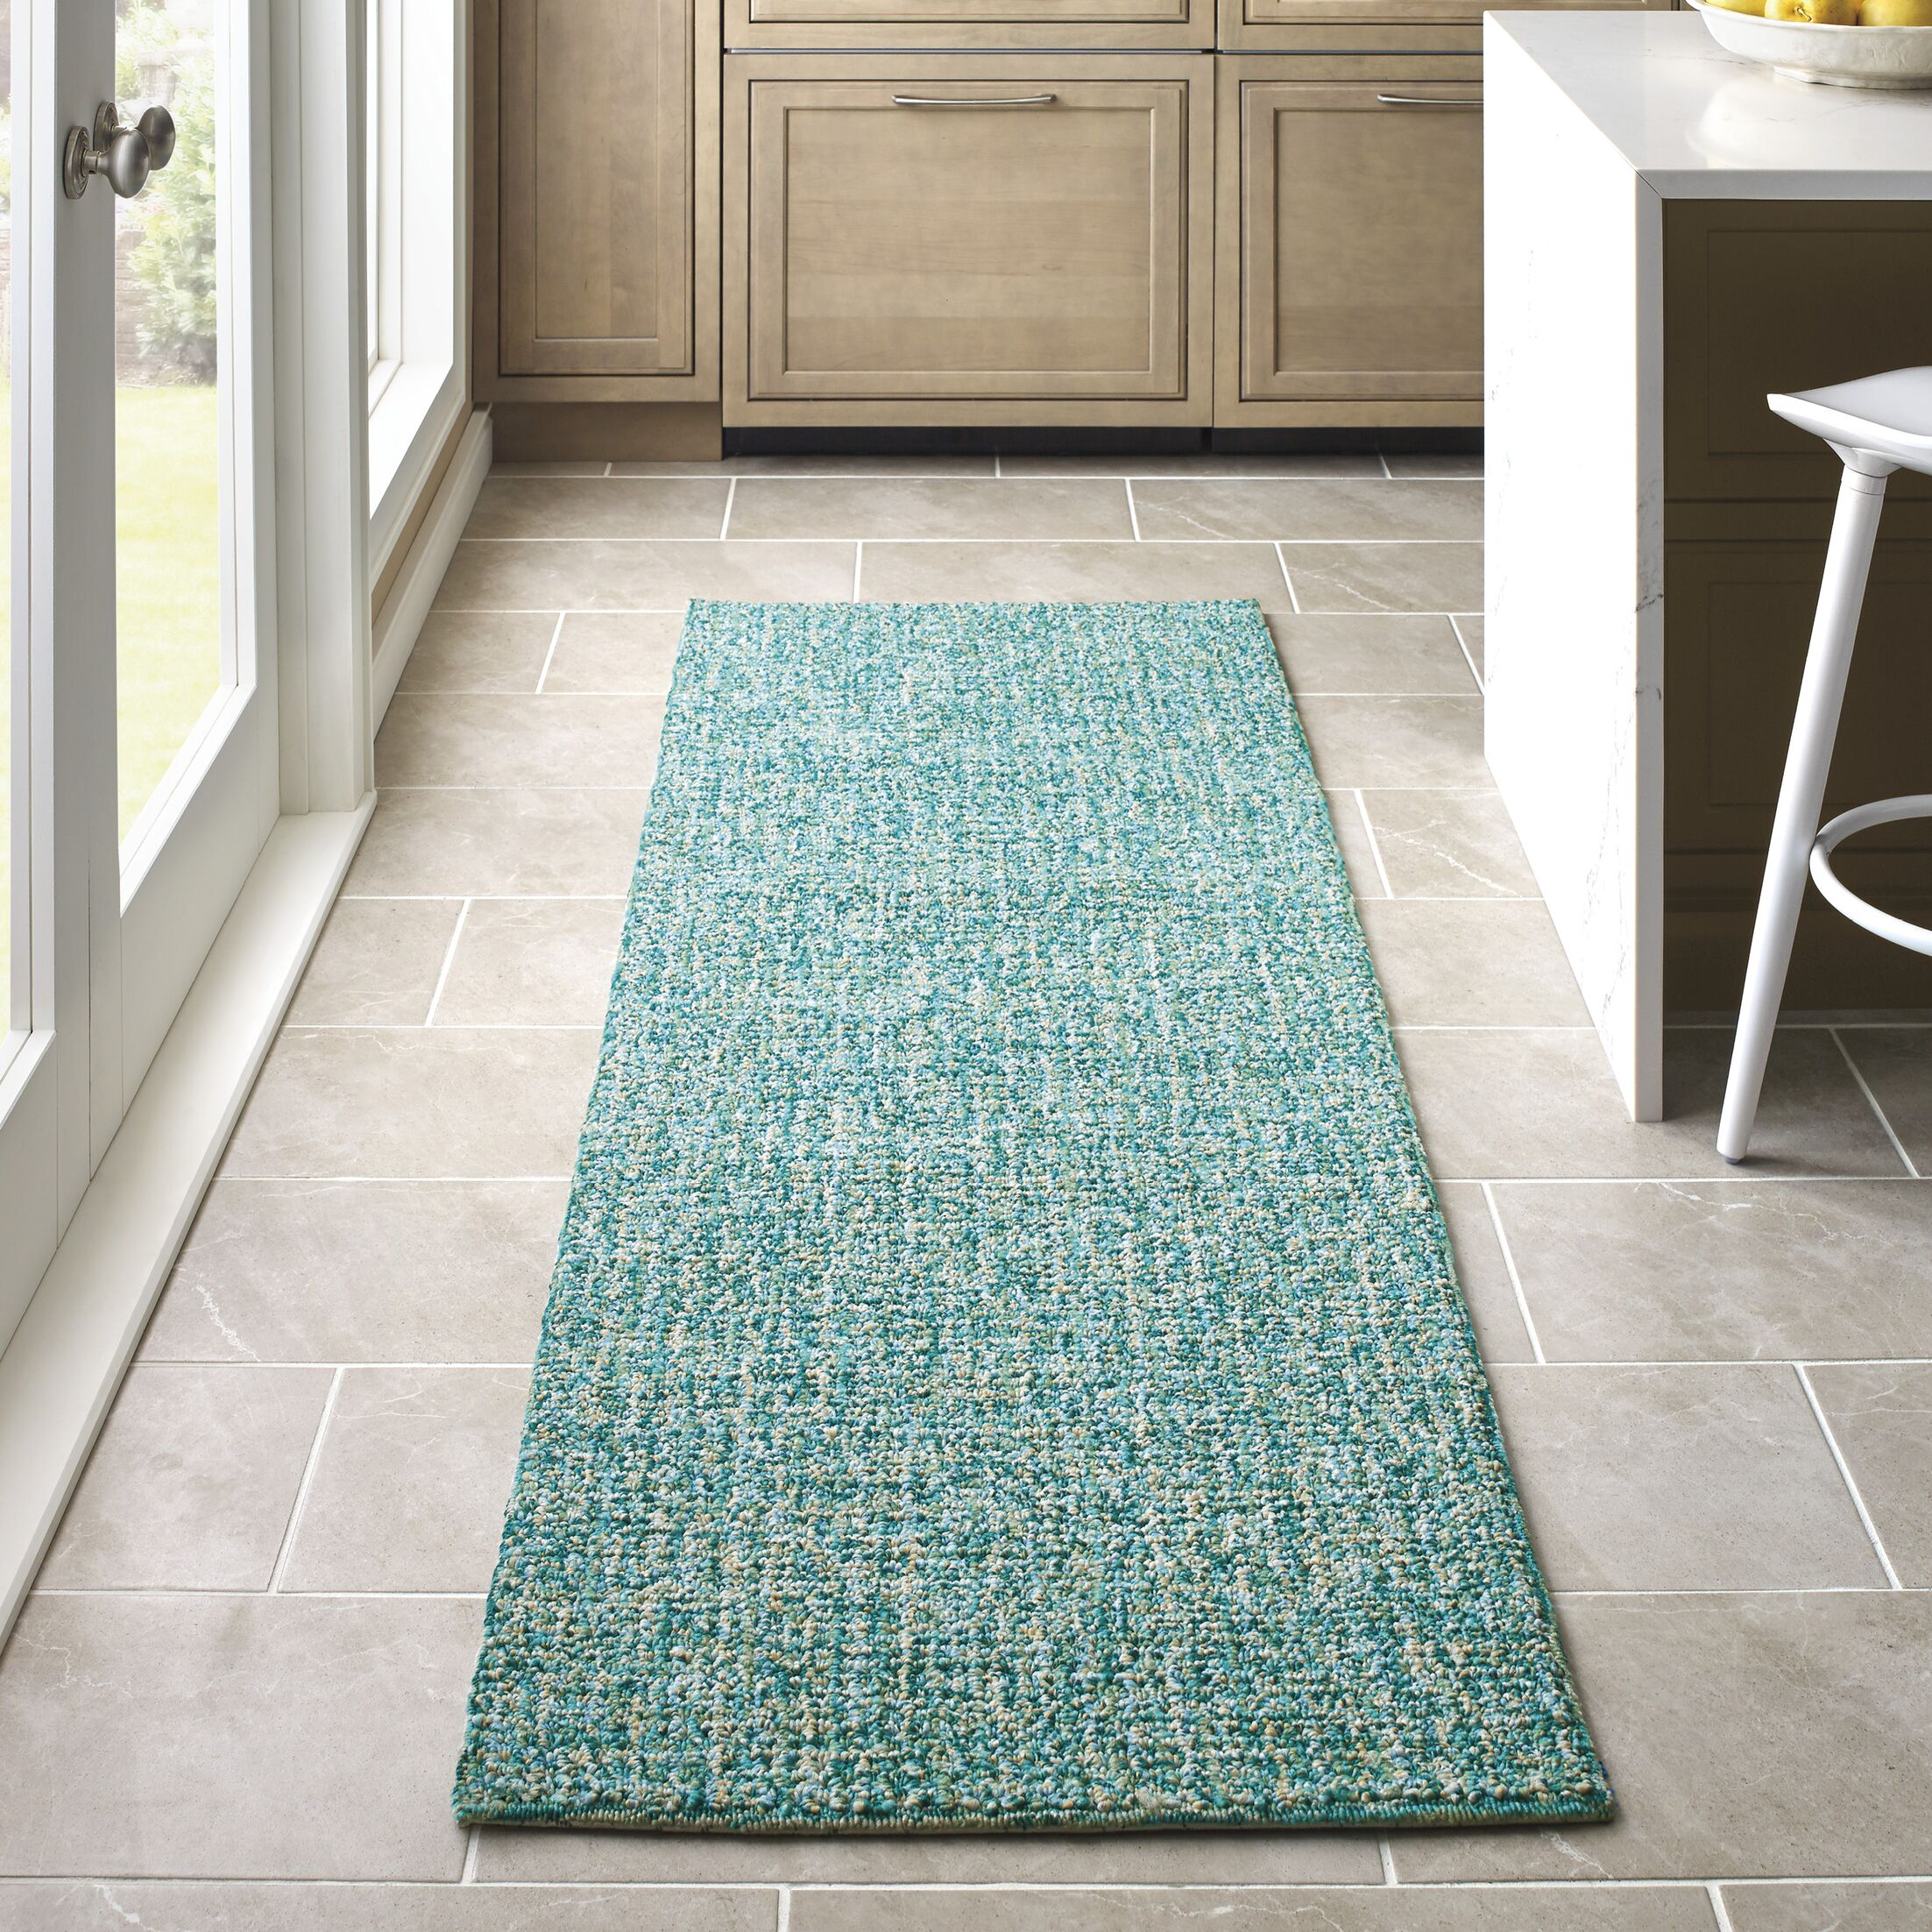 Donegal Hand Tufted Lake Area Rug Rug Size: Rectangle 3'6